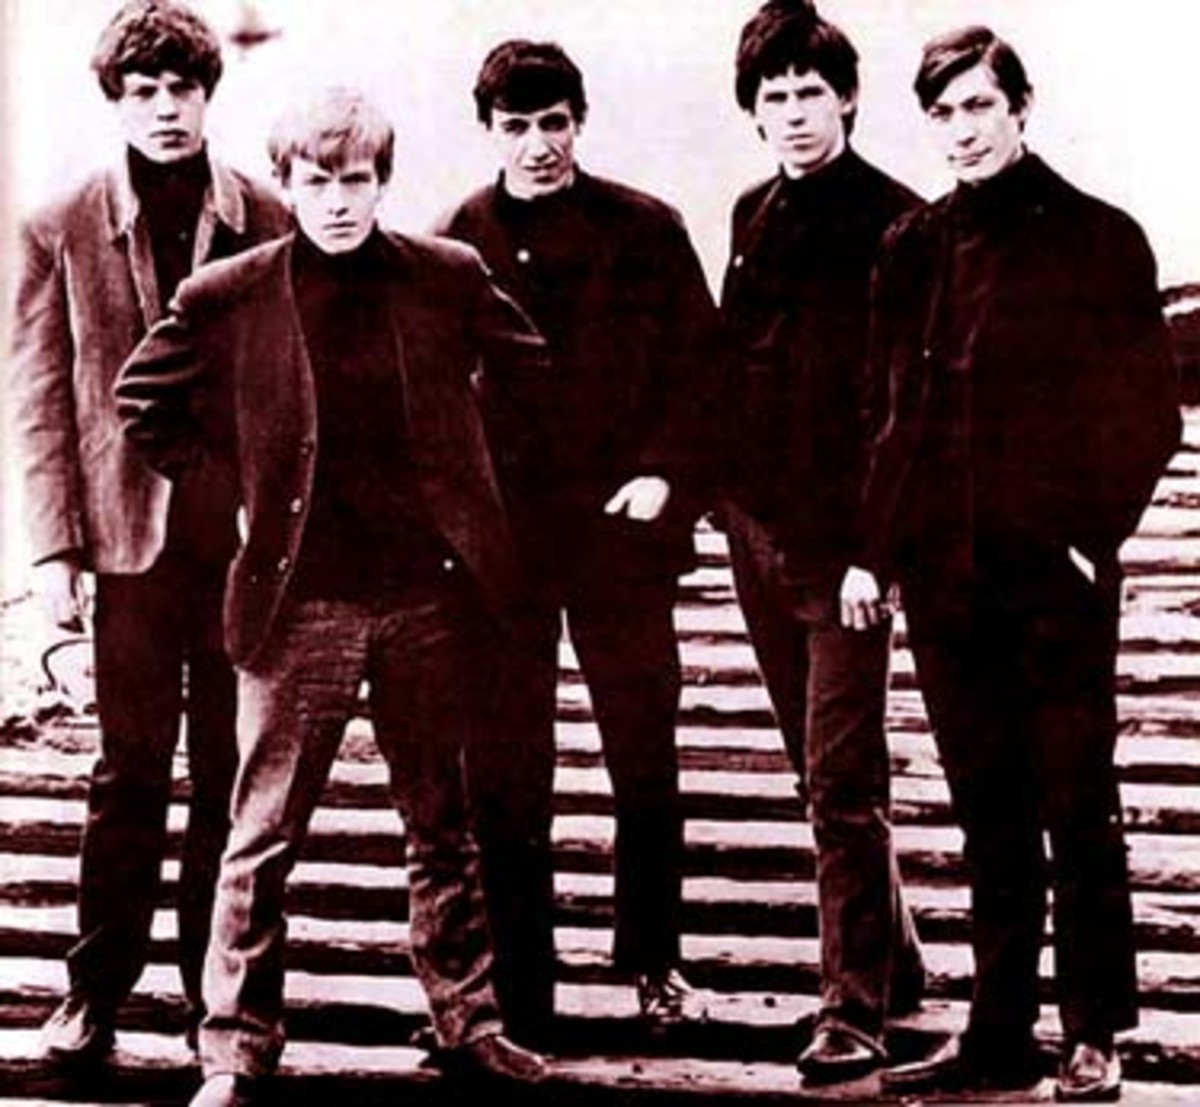 Brian and the Stones in early 1963